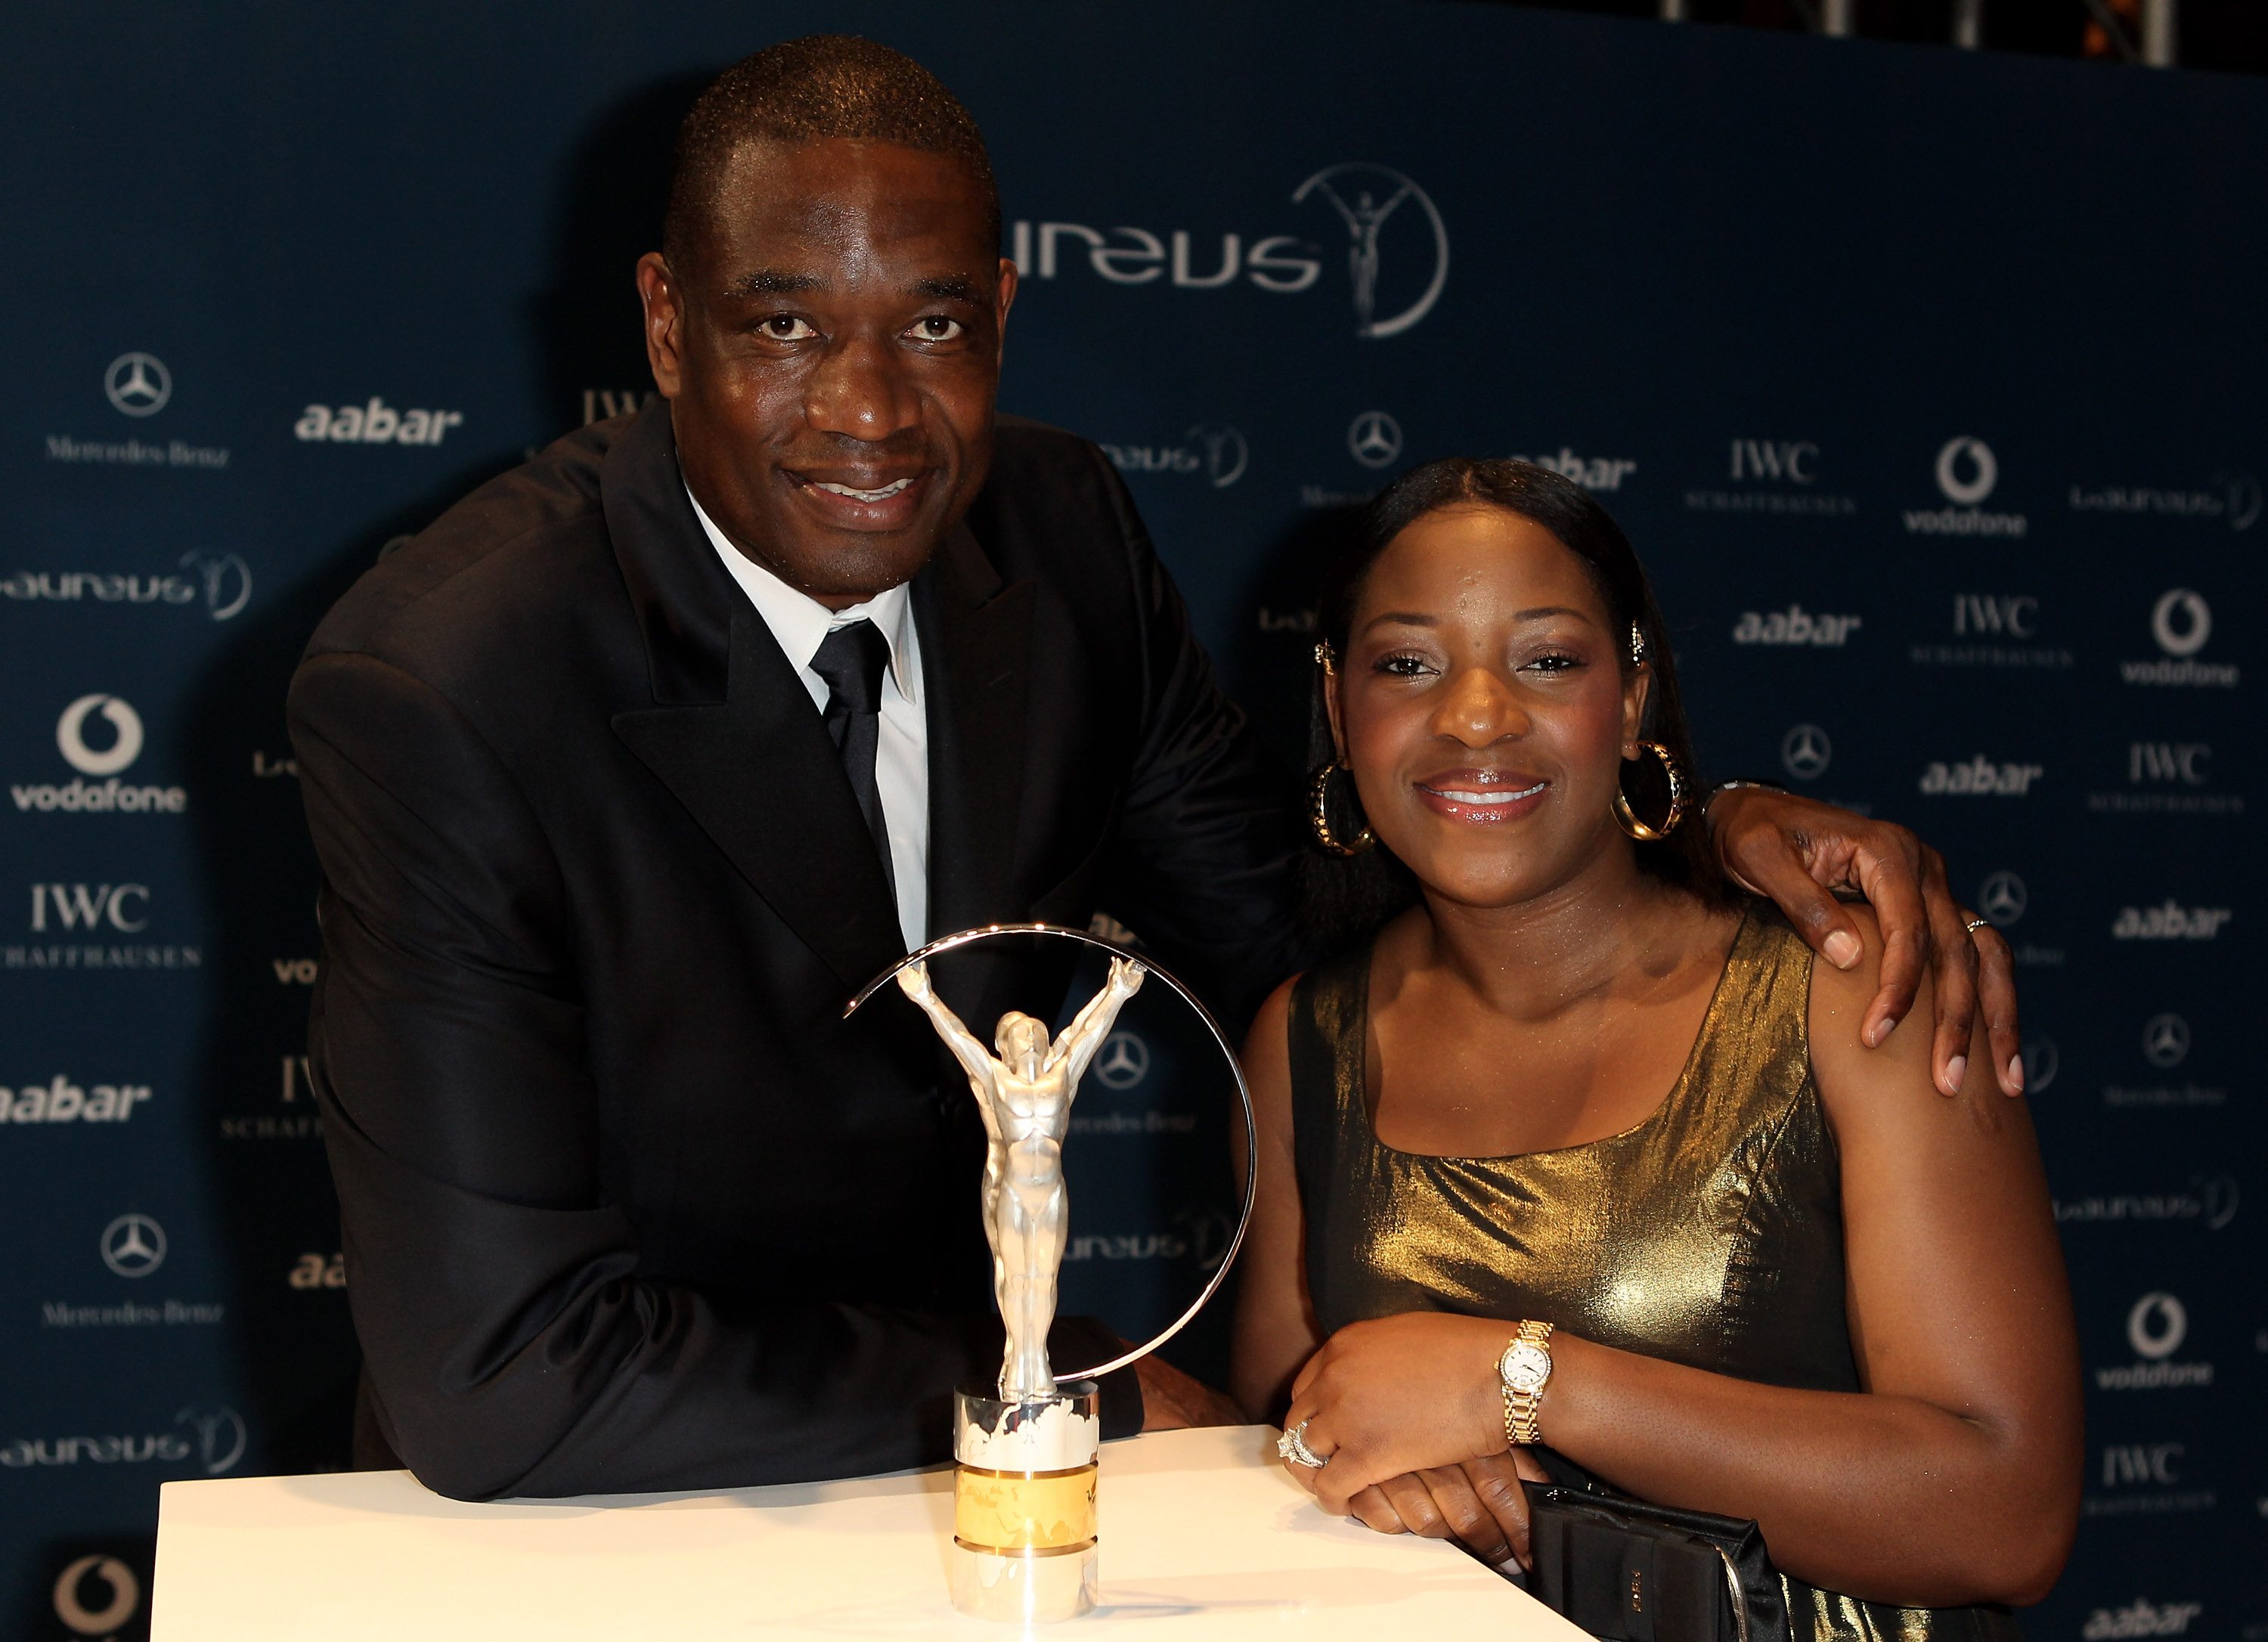 ABU DHABI, UNITED ARAB EMIRATES - MARCH 10:  US basketball legend Dikembe Mutombo and his wife Rose Mutumbo arrive at the Laureus World Sports Awards 2010 at Emirates Palace Hotel on March 10, 2010 in Abu Dhabi, United Arab Emirates.  (Photo by Ian Walton